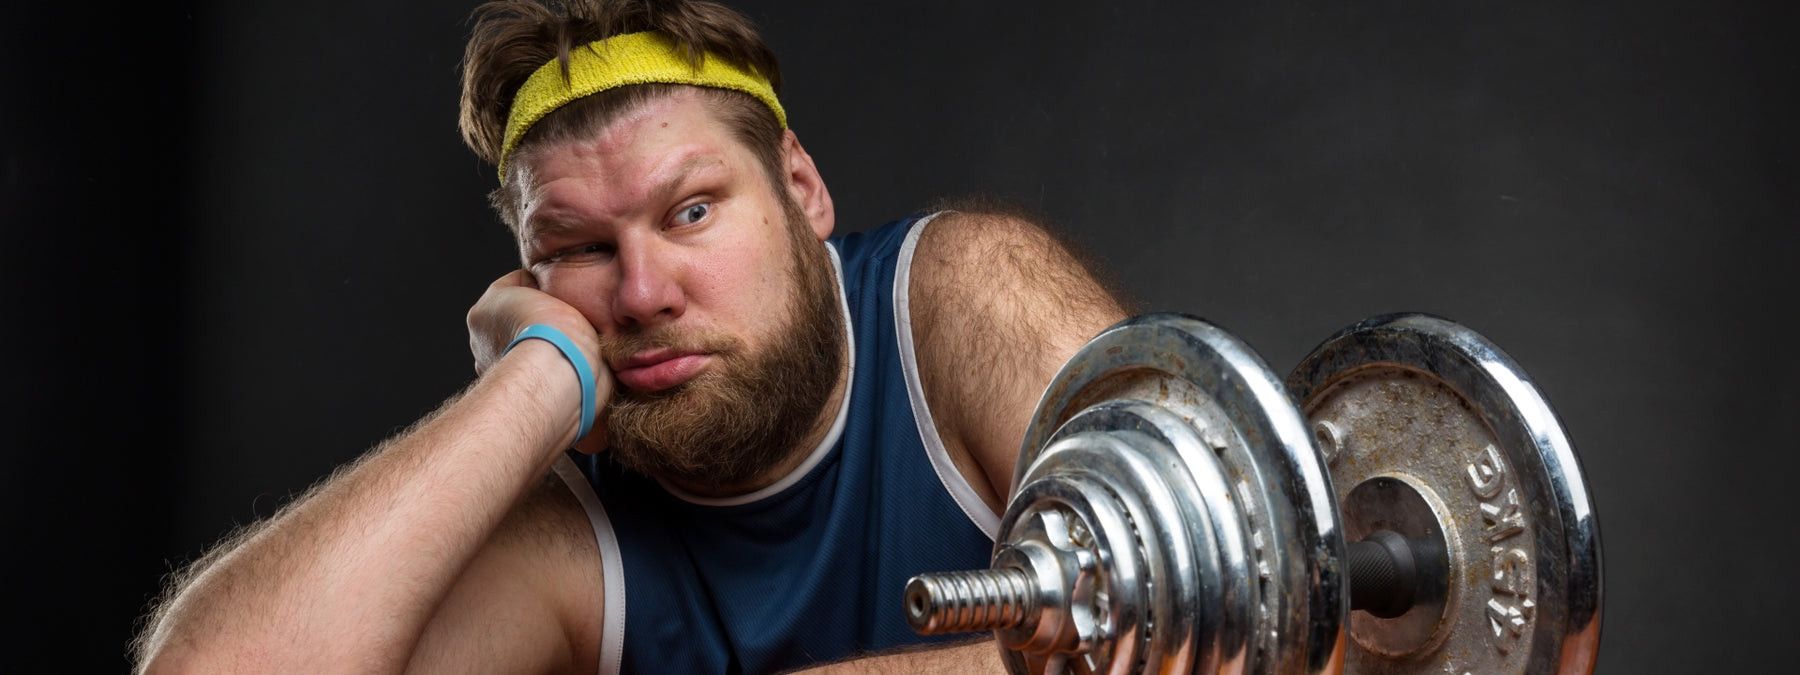 6 Reasons Why You Don't Even Lift